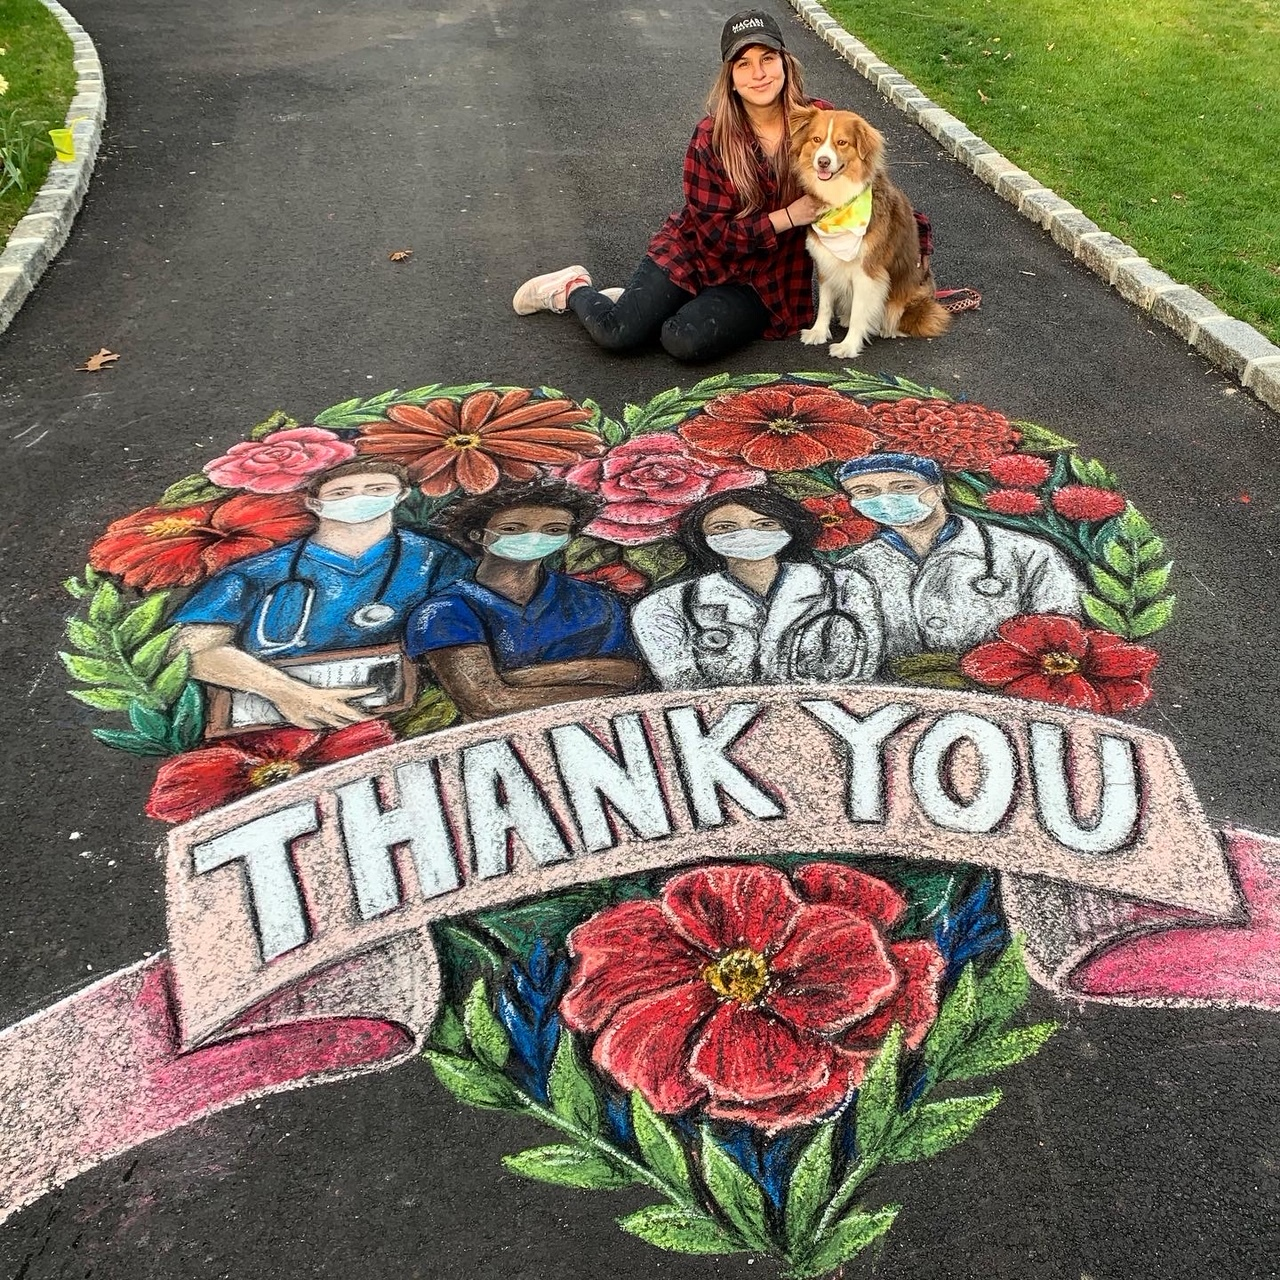 Chalk artist Kara Hoblin with her dog, Lily, and the driveway tribute to healthcare workers that went viral.